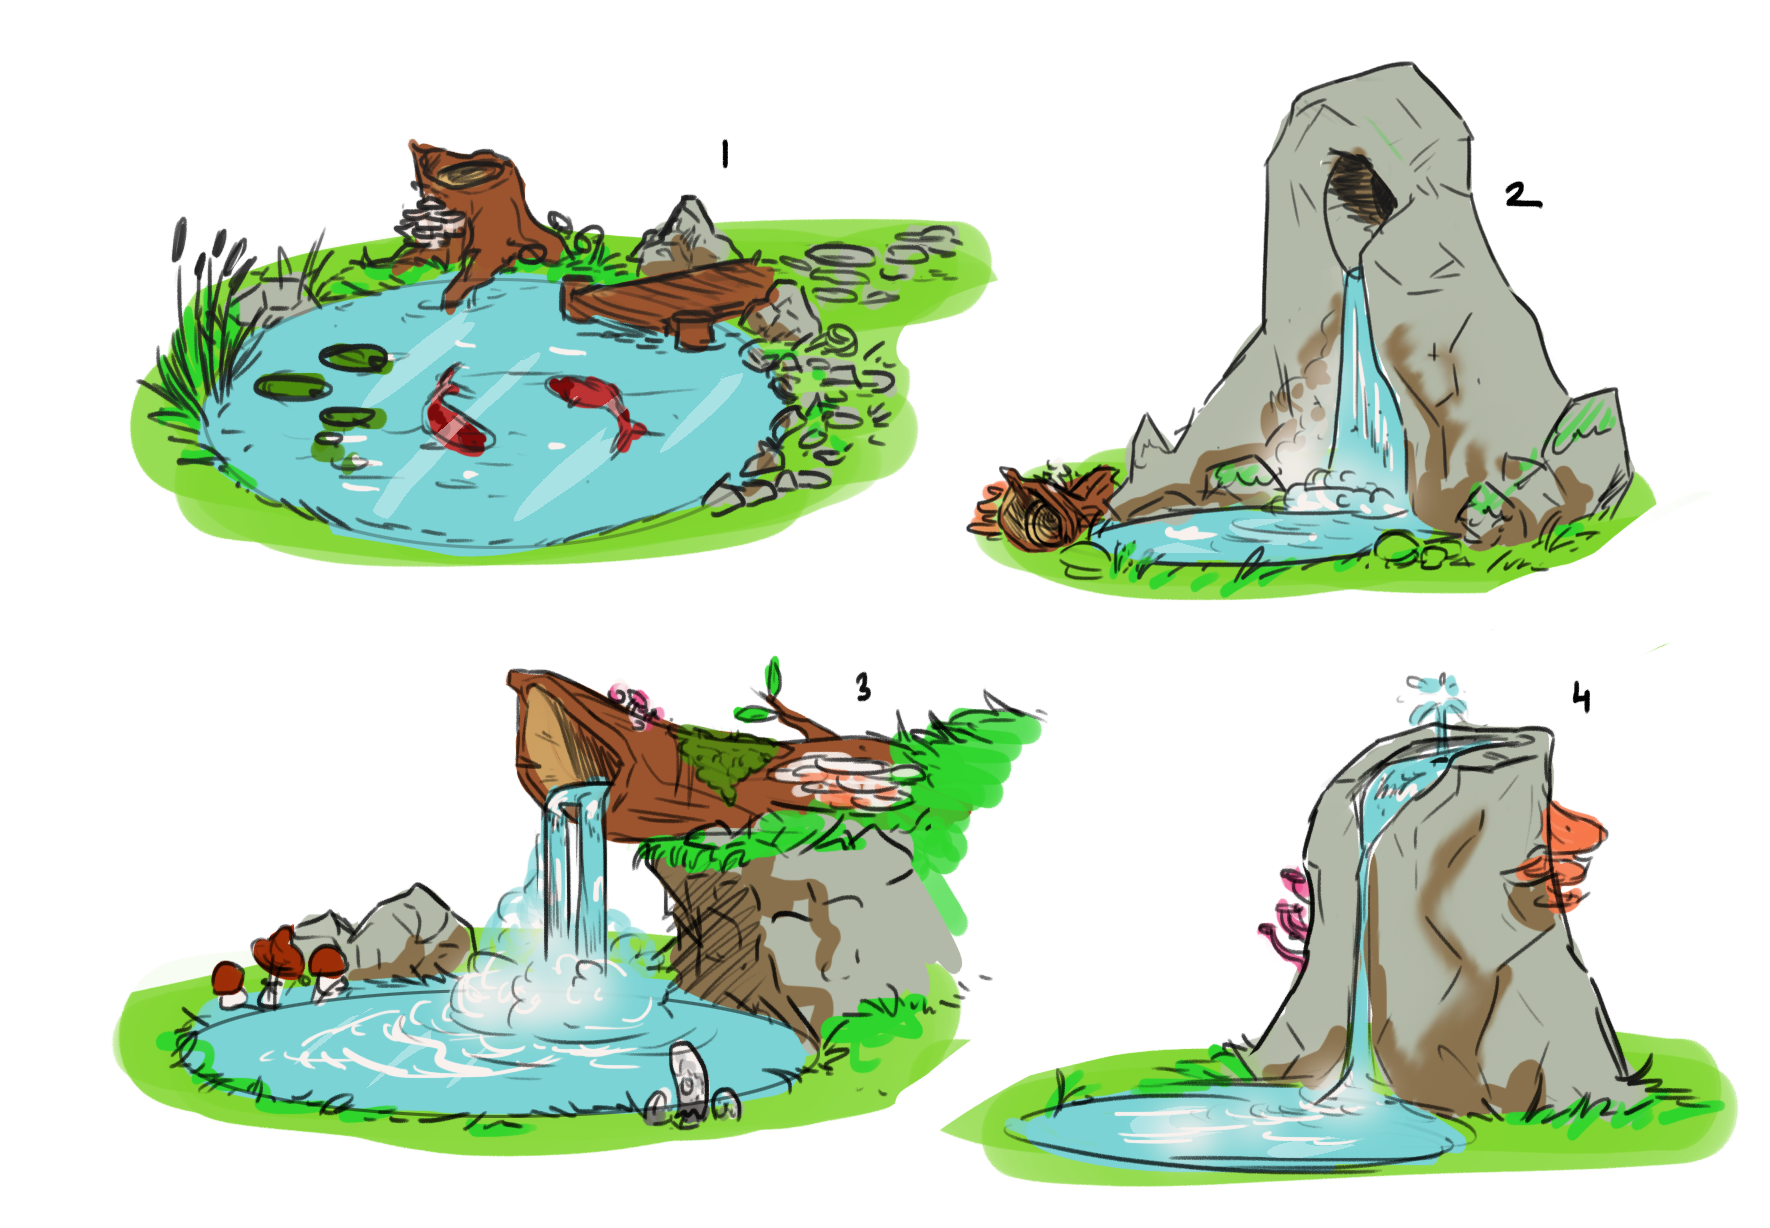 Early concept   We wanted a waterfall to make the world appear more magical